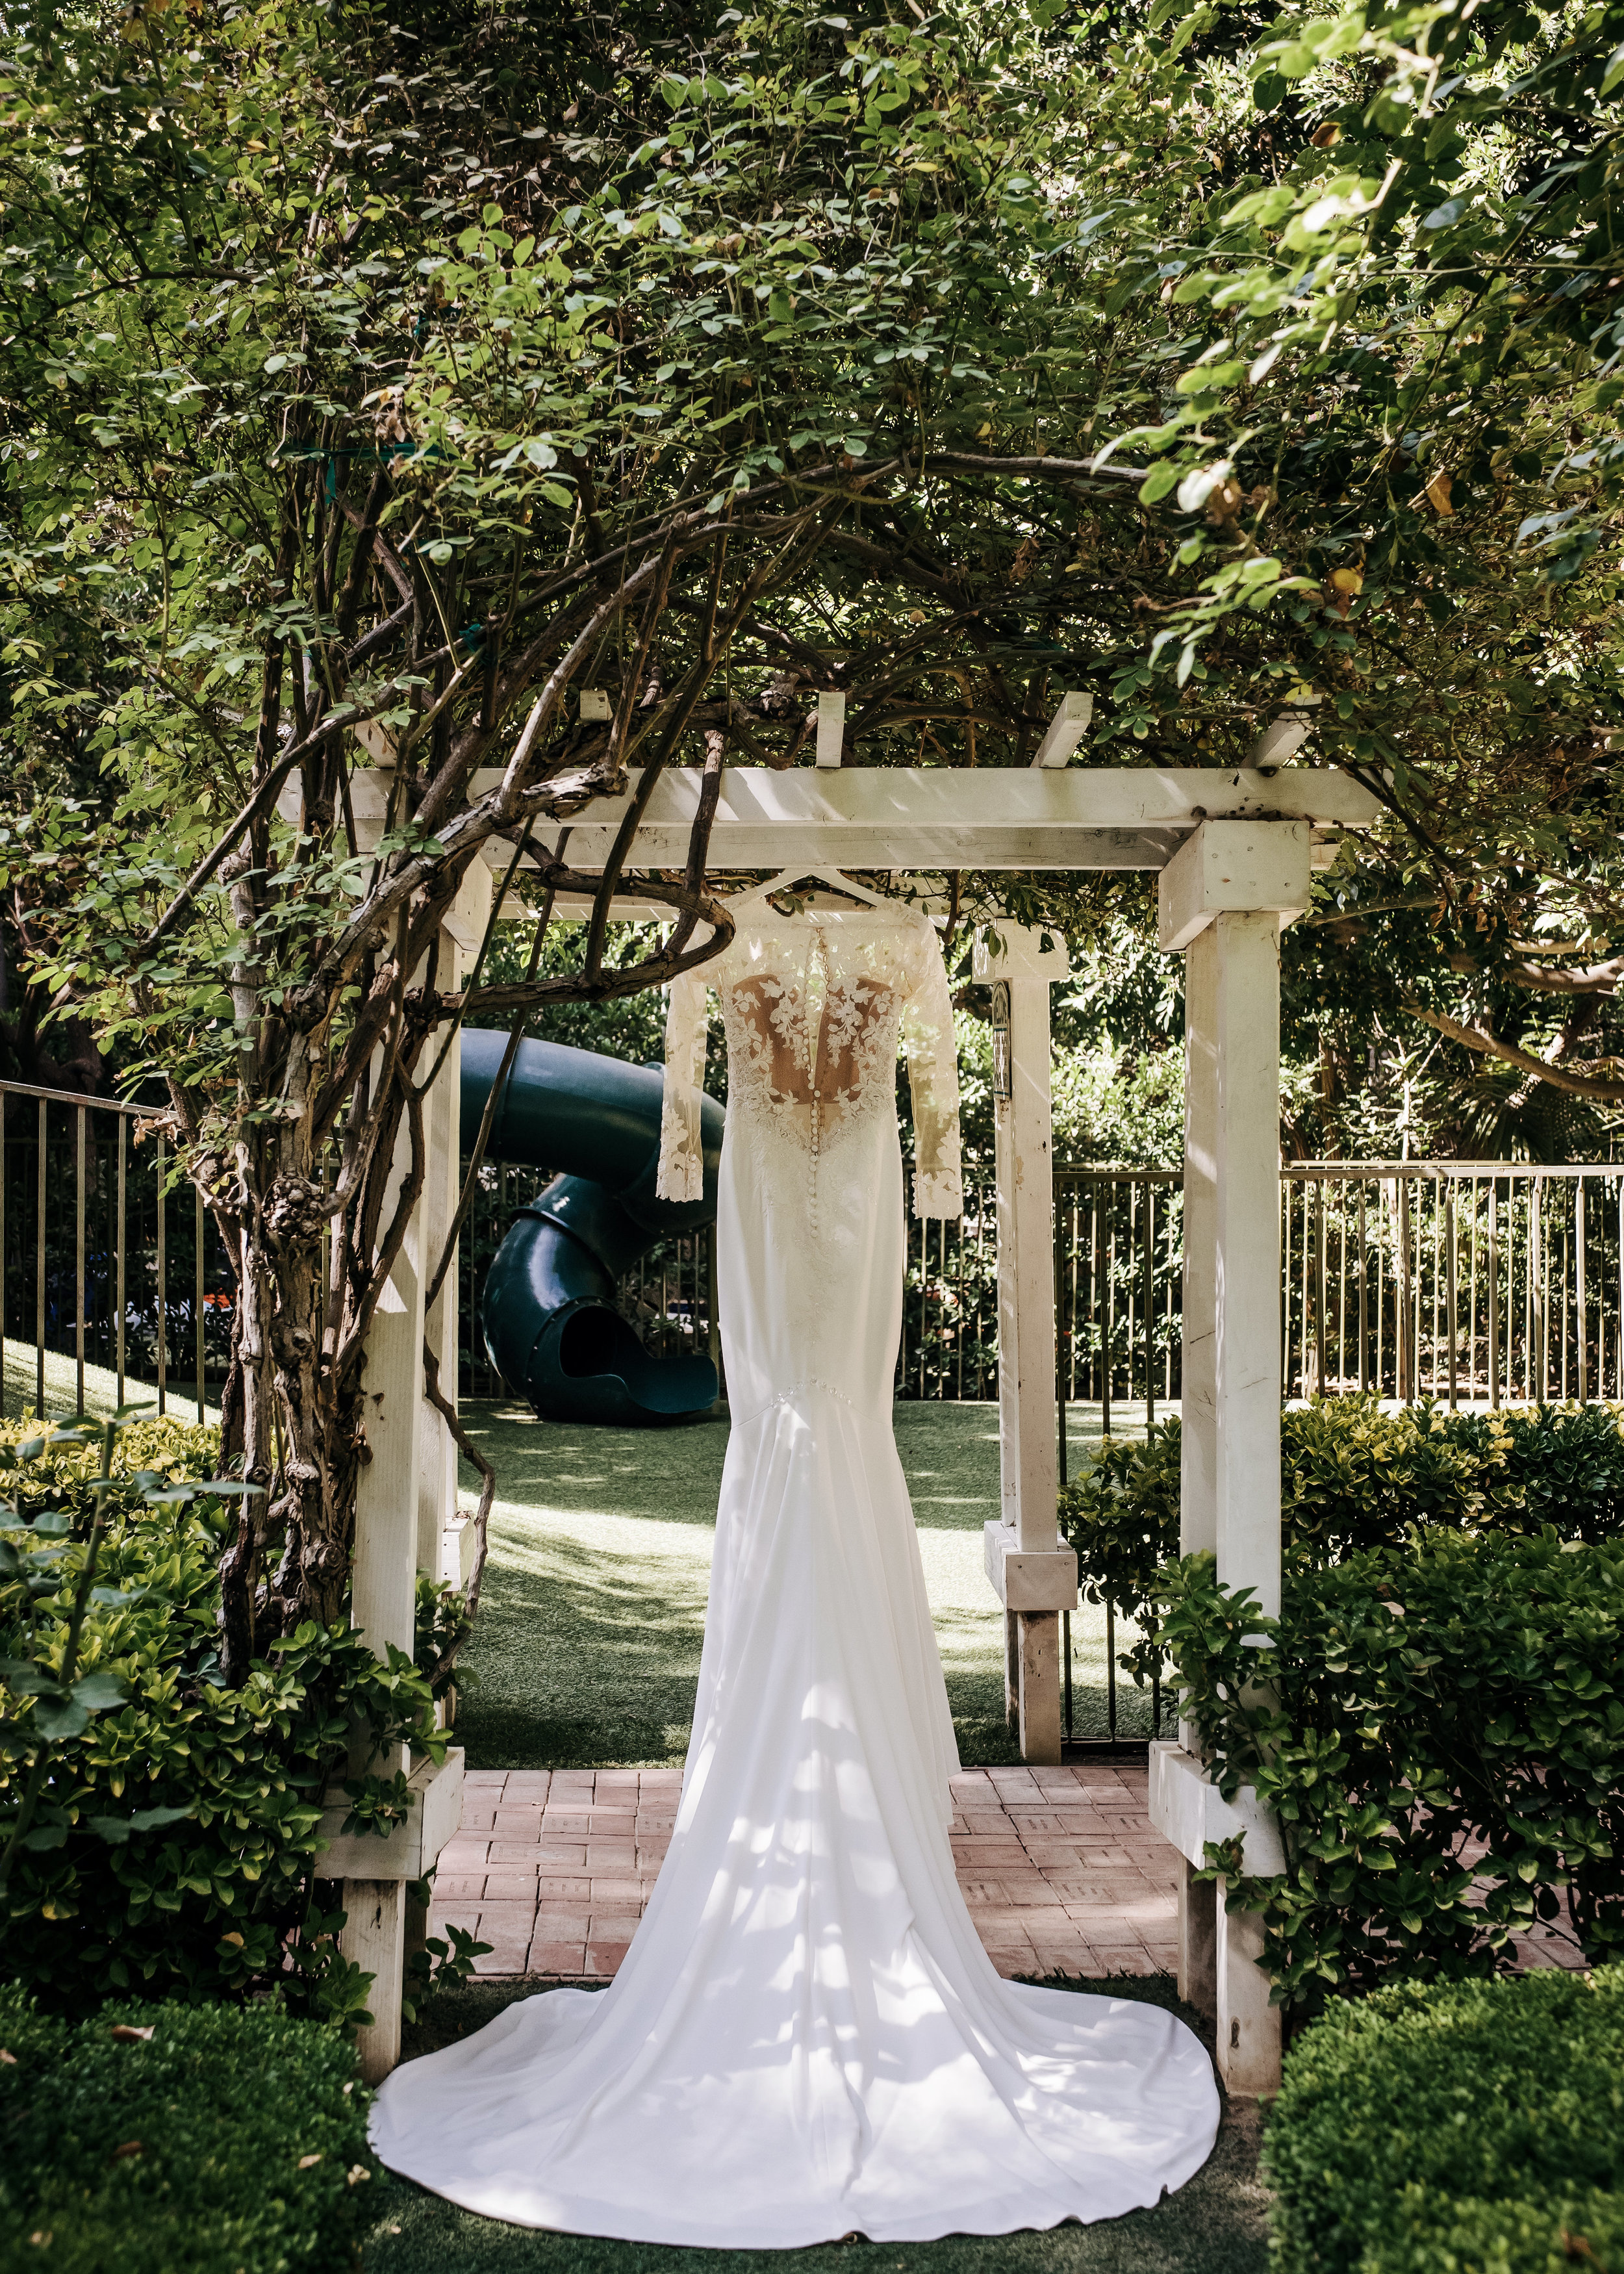 Turchin_20180825_Austinae-Brent-Wedding_058.jpg